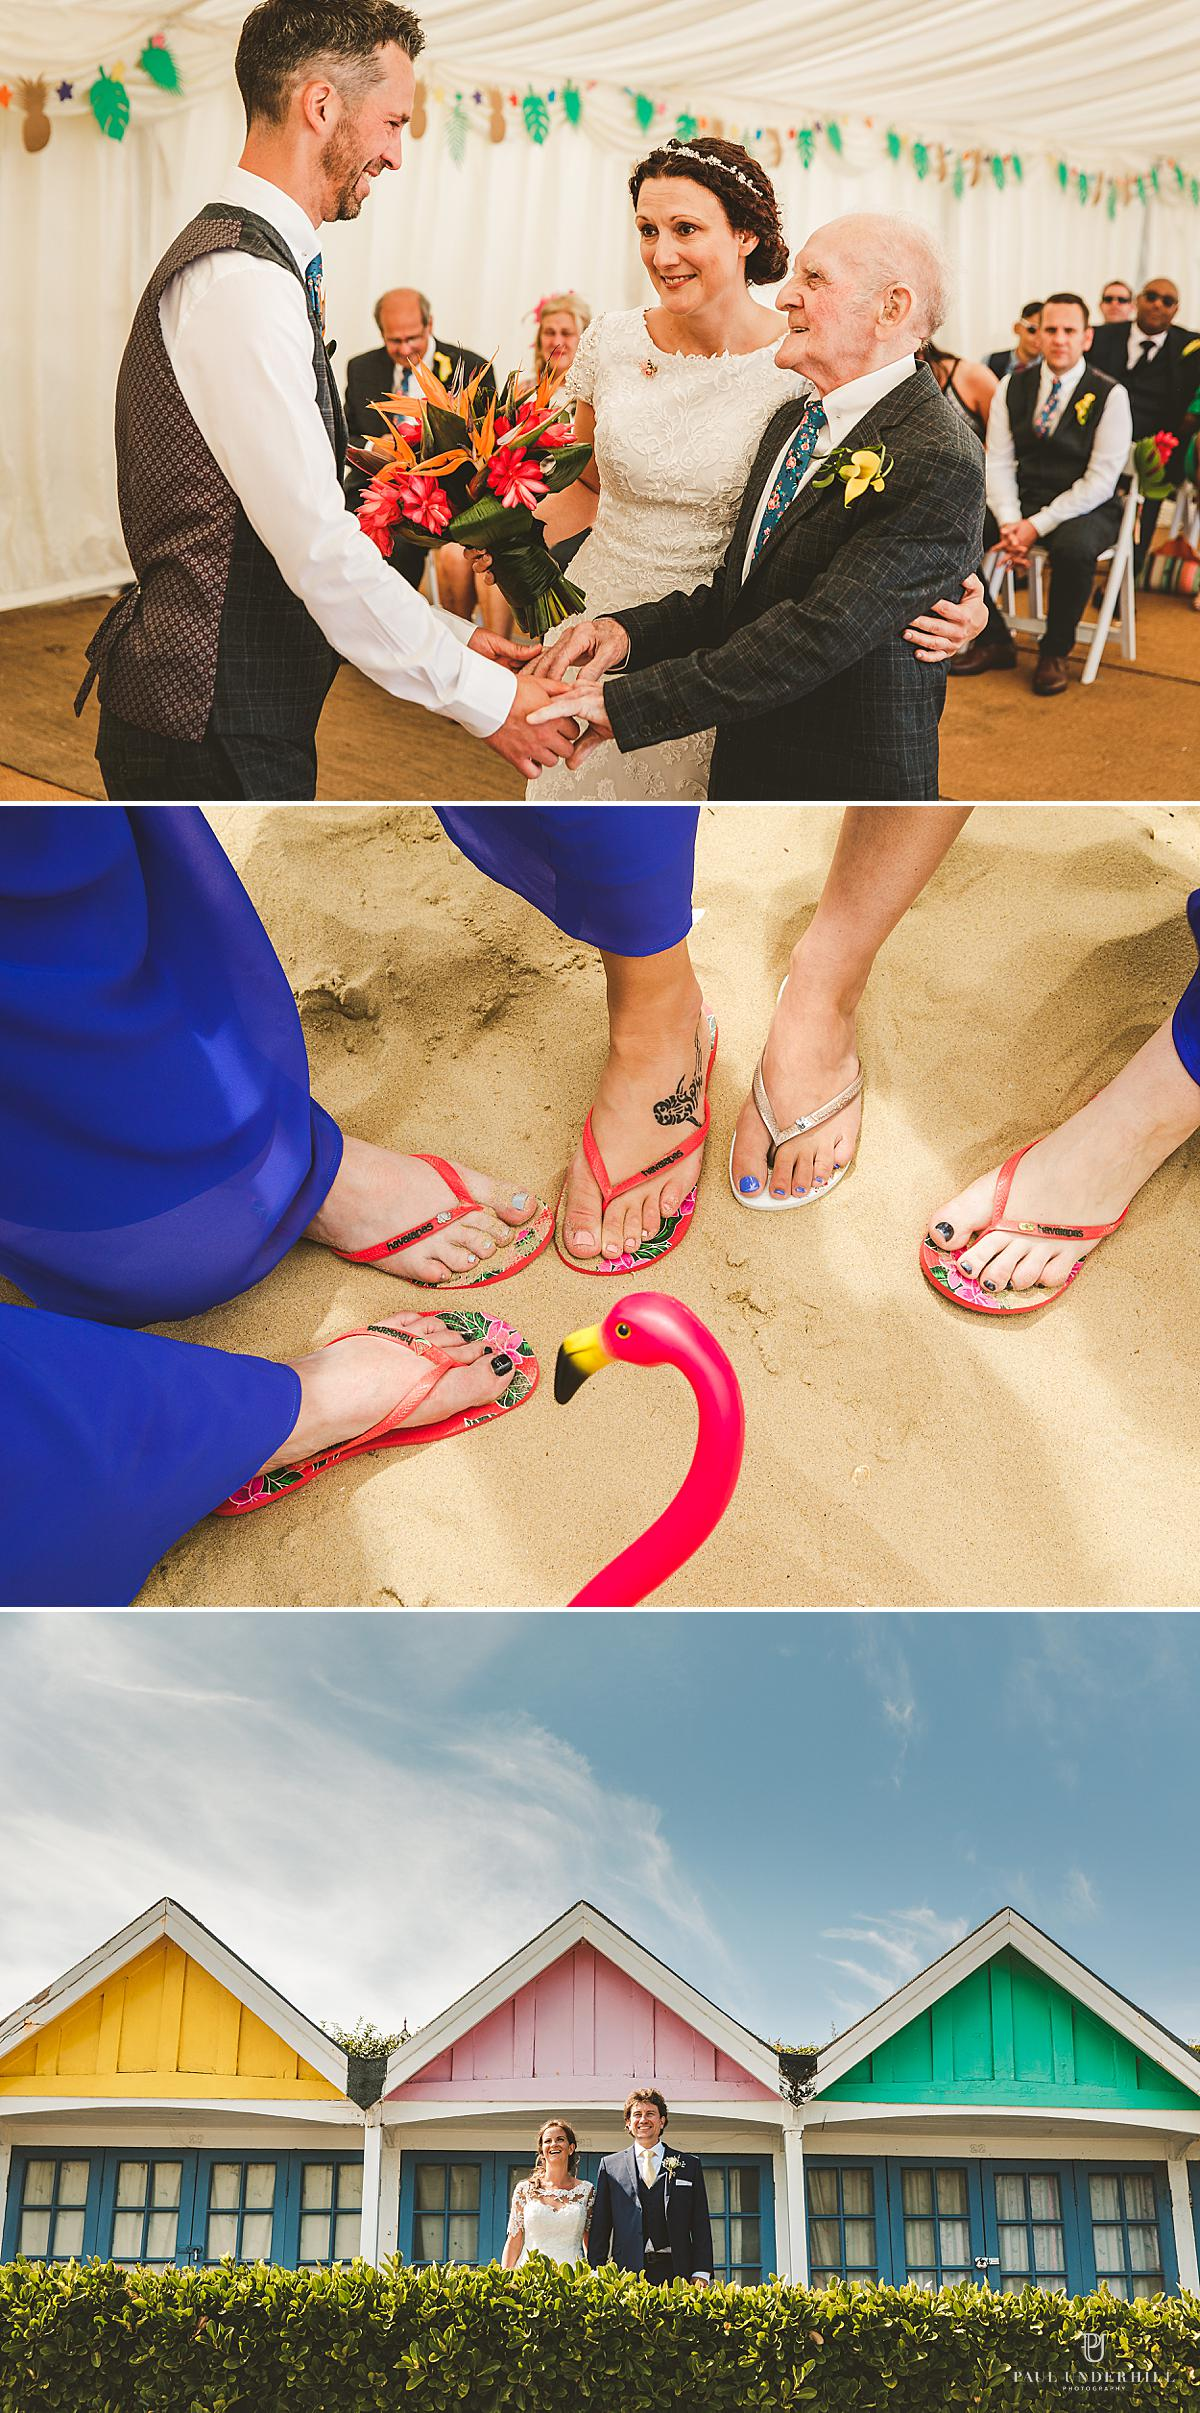 Beach weddings photographer Bournemouth